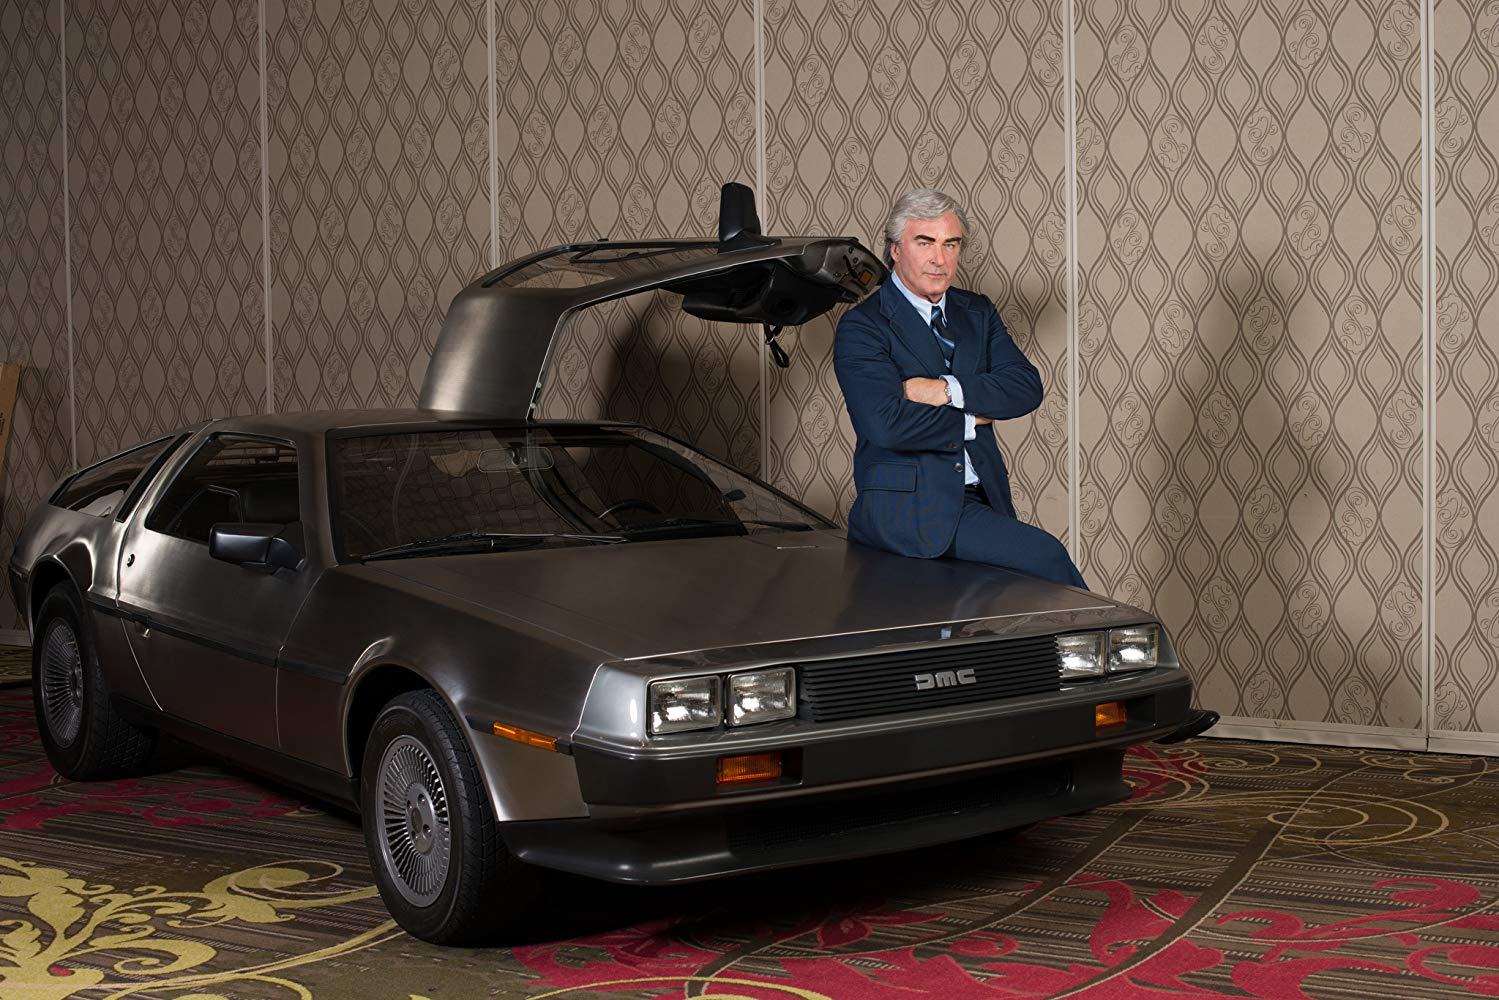 Framing John Delorean Review A Multi Faceted Portrait Of